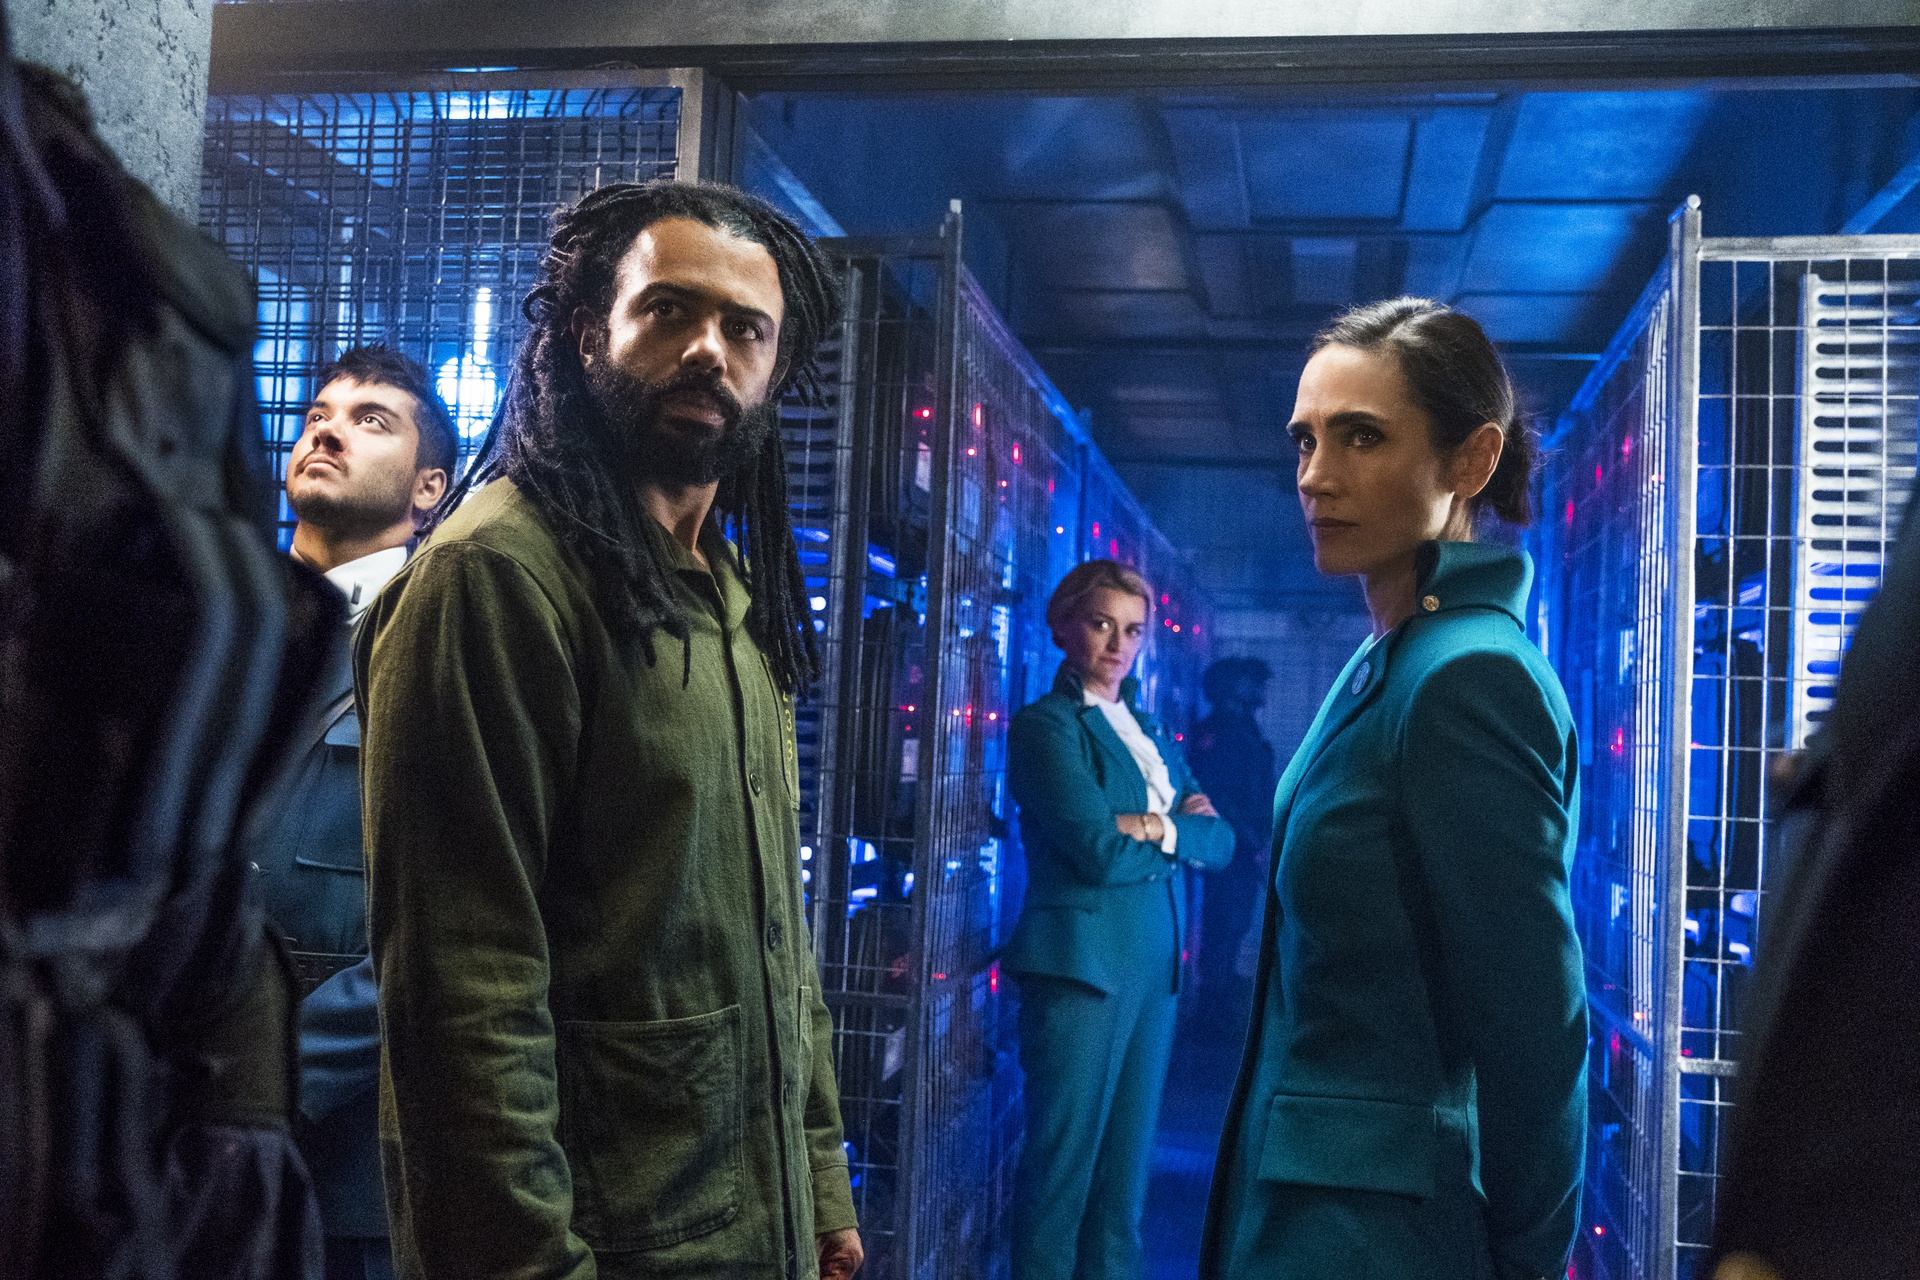 'Snowpiercer' Showrunner on Sci-Fi's Role Onscreen + How Actors Can Play to It